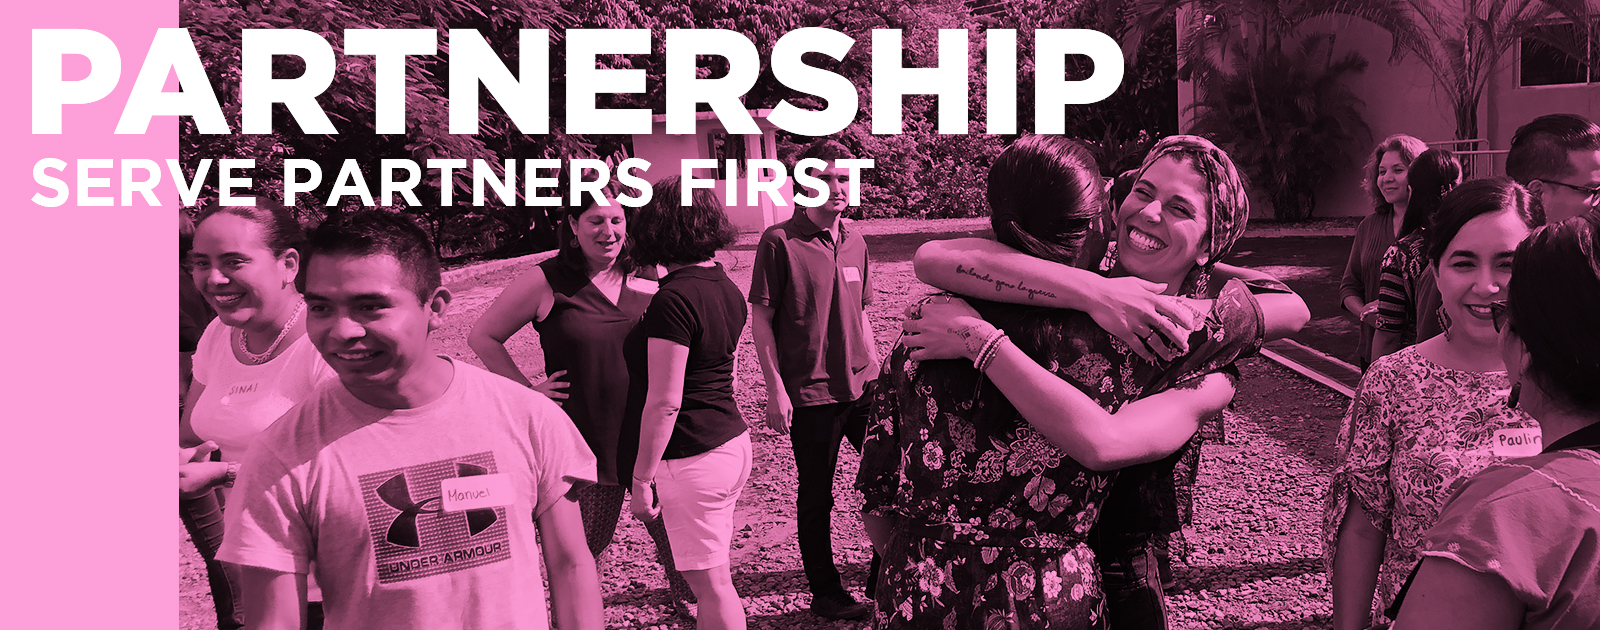 Partnership: Serve partners first